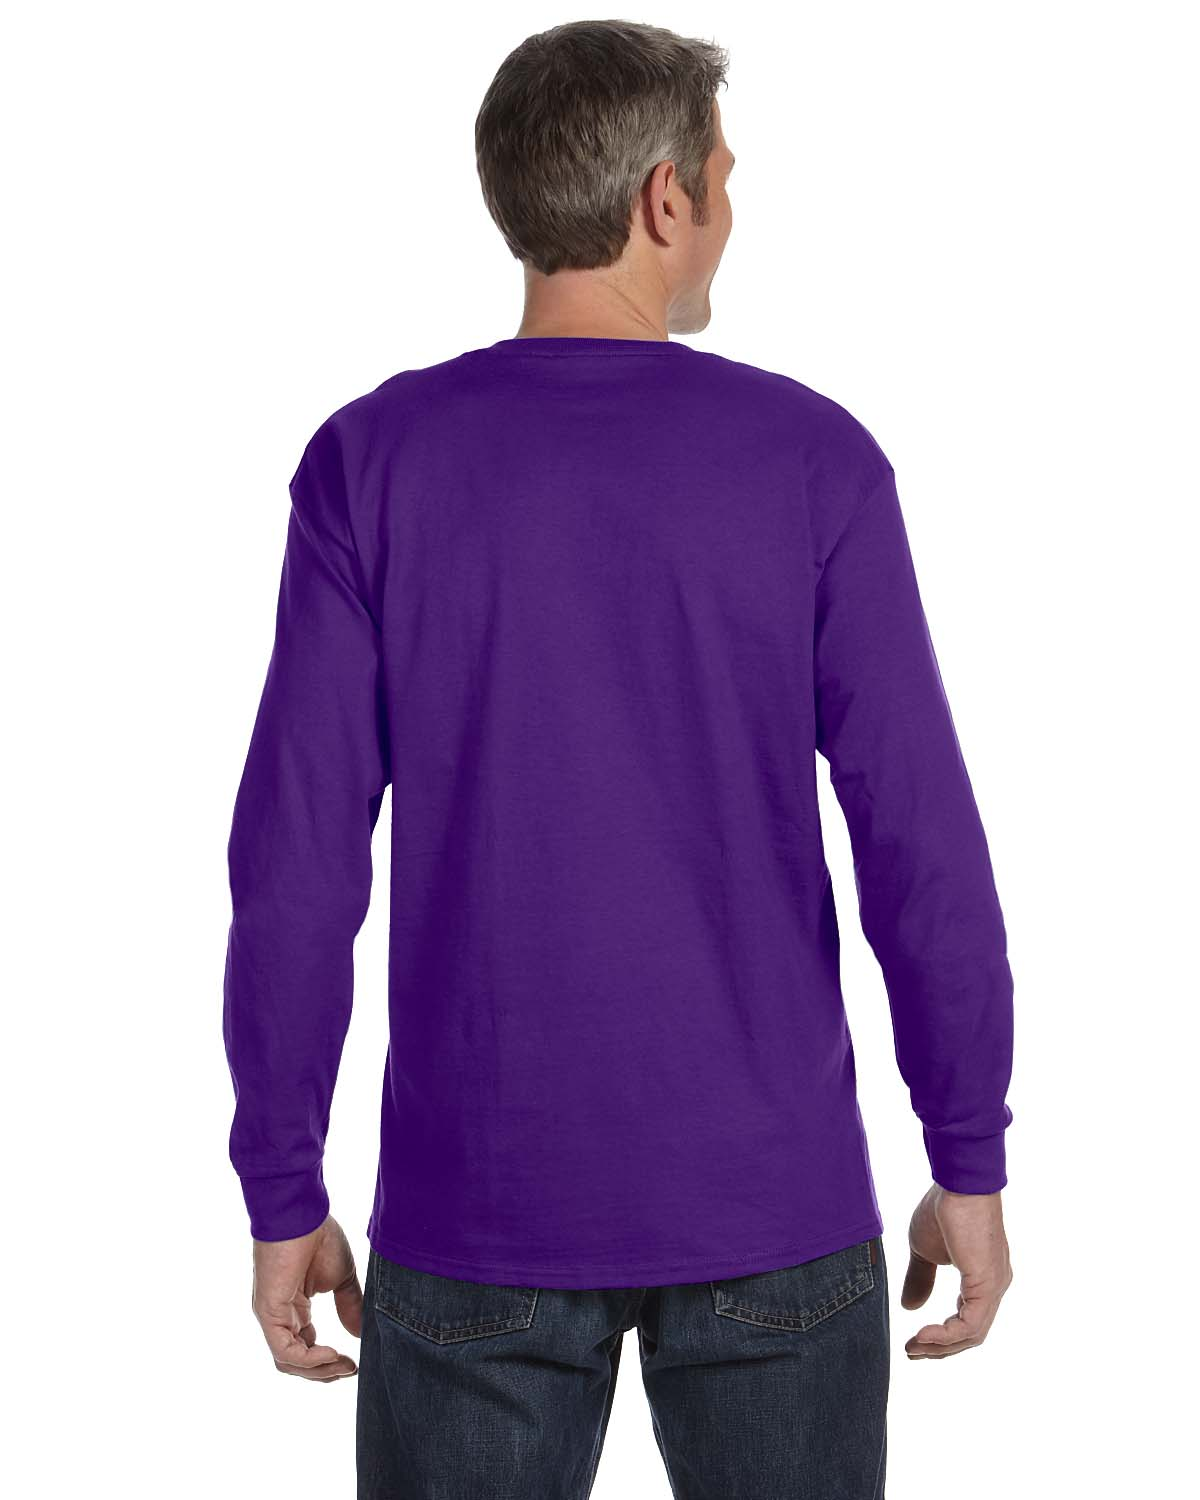 Gildan-Mens-T-Shirt-Long-Sleeve-Heavy-Cotton-5-3-oz-S-XL-R-G540-5400 thumbnail 38